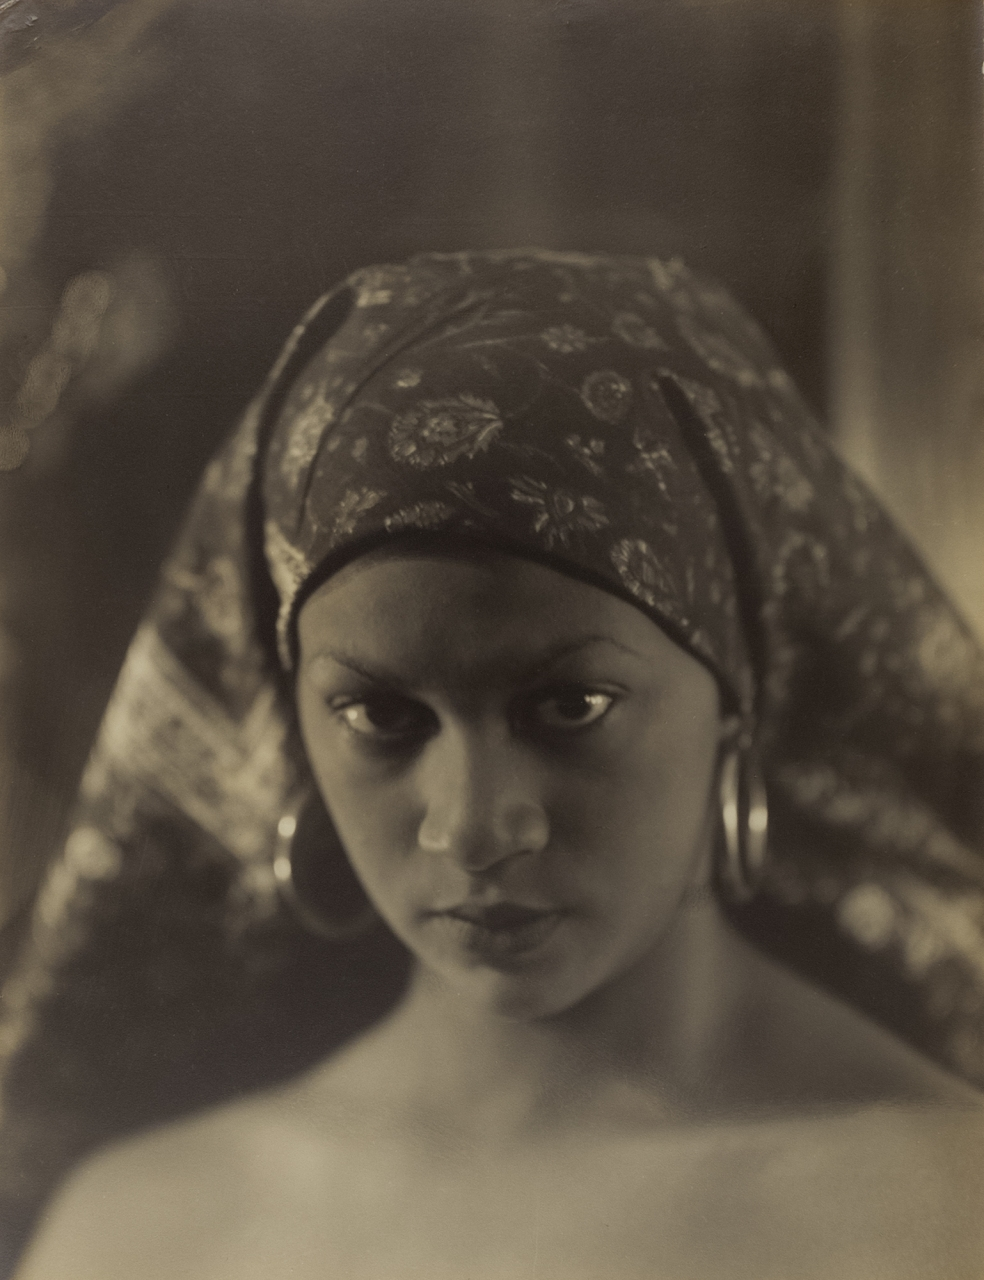 Violet Keene Perinchief, African Appeal, around 1935. Gelatin silver print, Overall (sheet): 64.45 x 50.80 cm. Courtesy Stephen Bulger Gallery © The Estate of Violet Keene Perinchief/ Stephen Bulger Gallery.